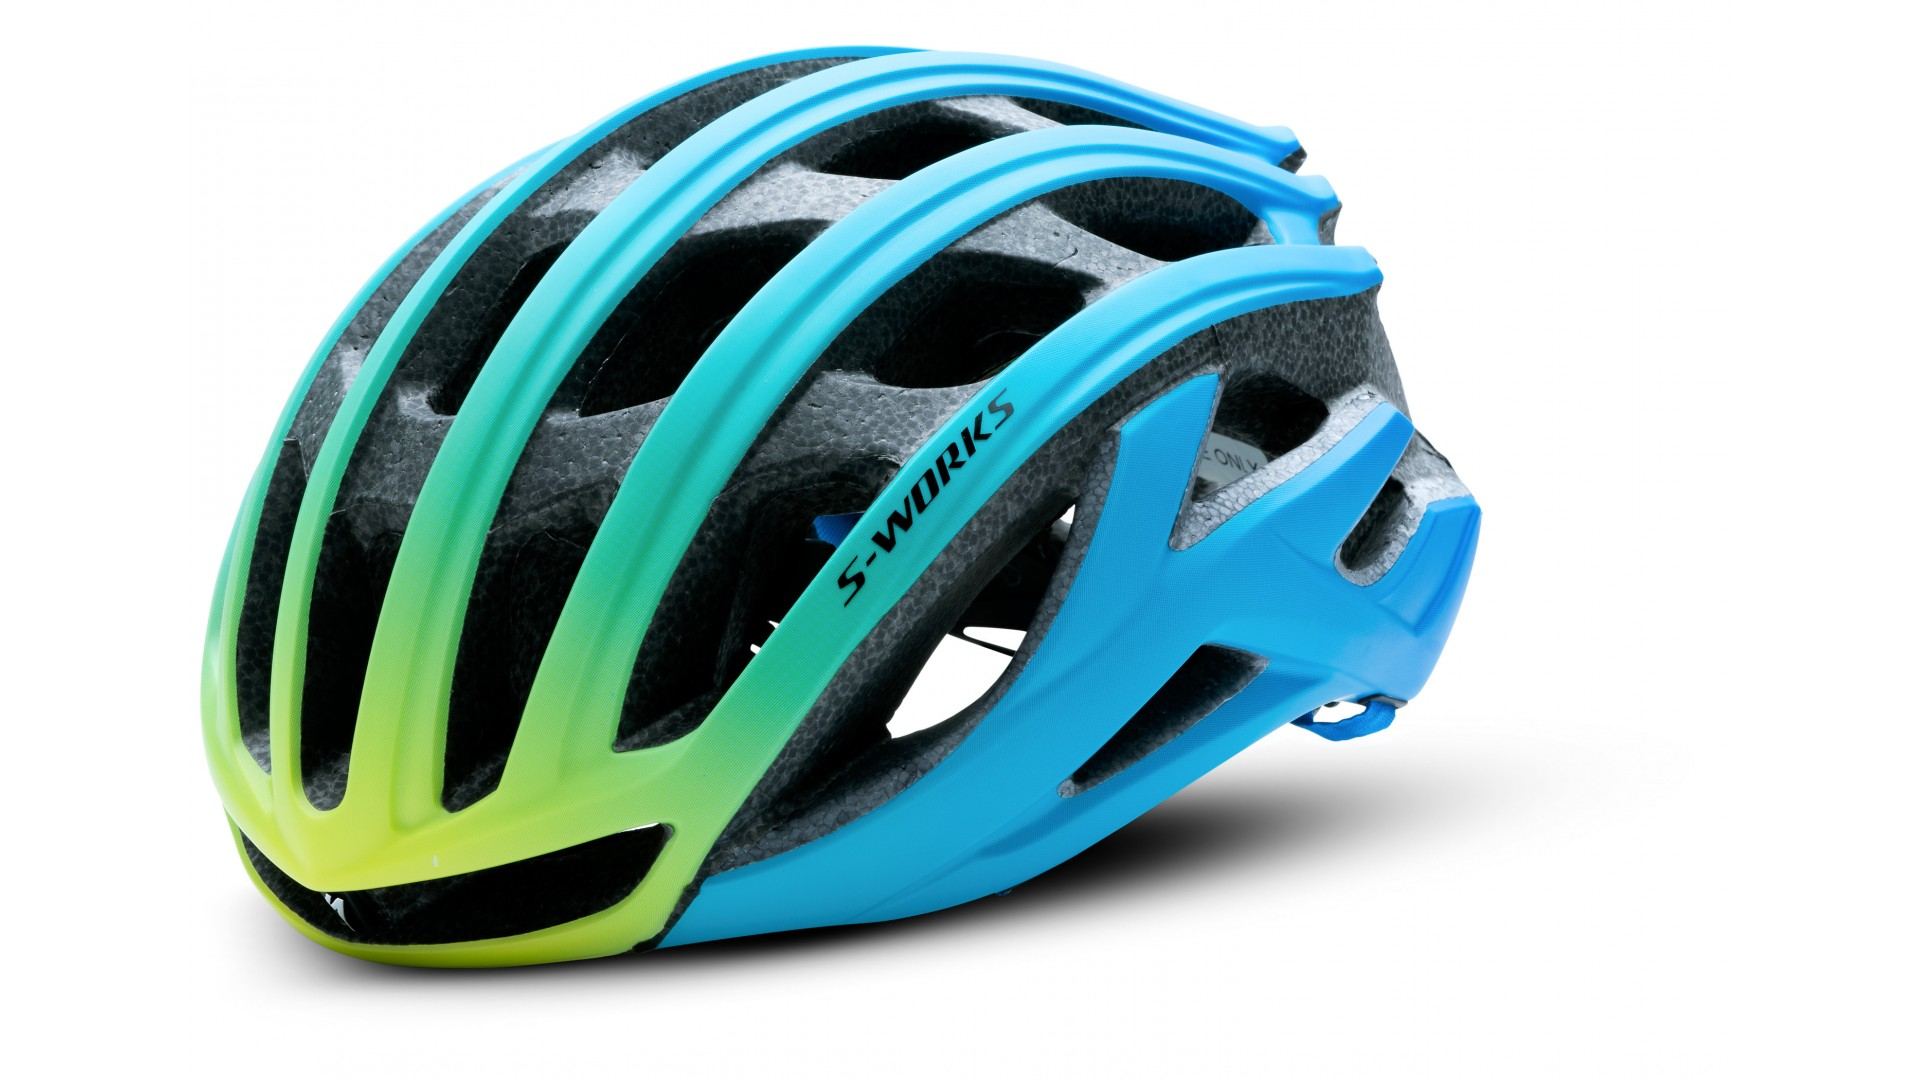 S-Works Prevail II Mips Casco Ciclismo Carretera Specialized Down Under 1 IBKBike.es